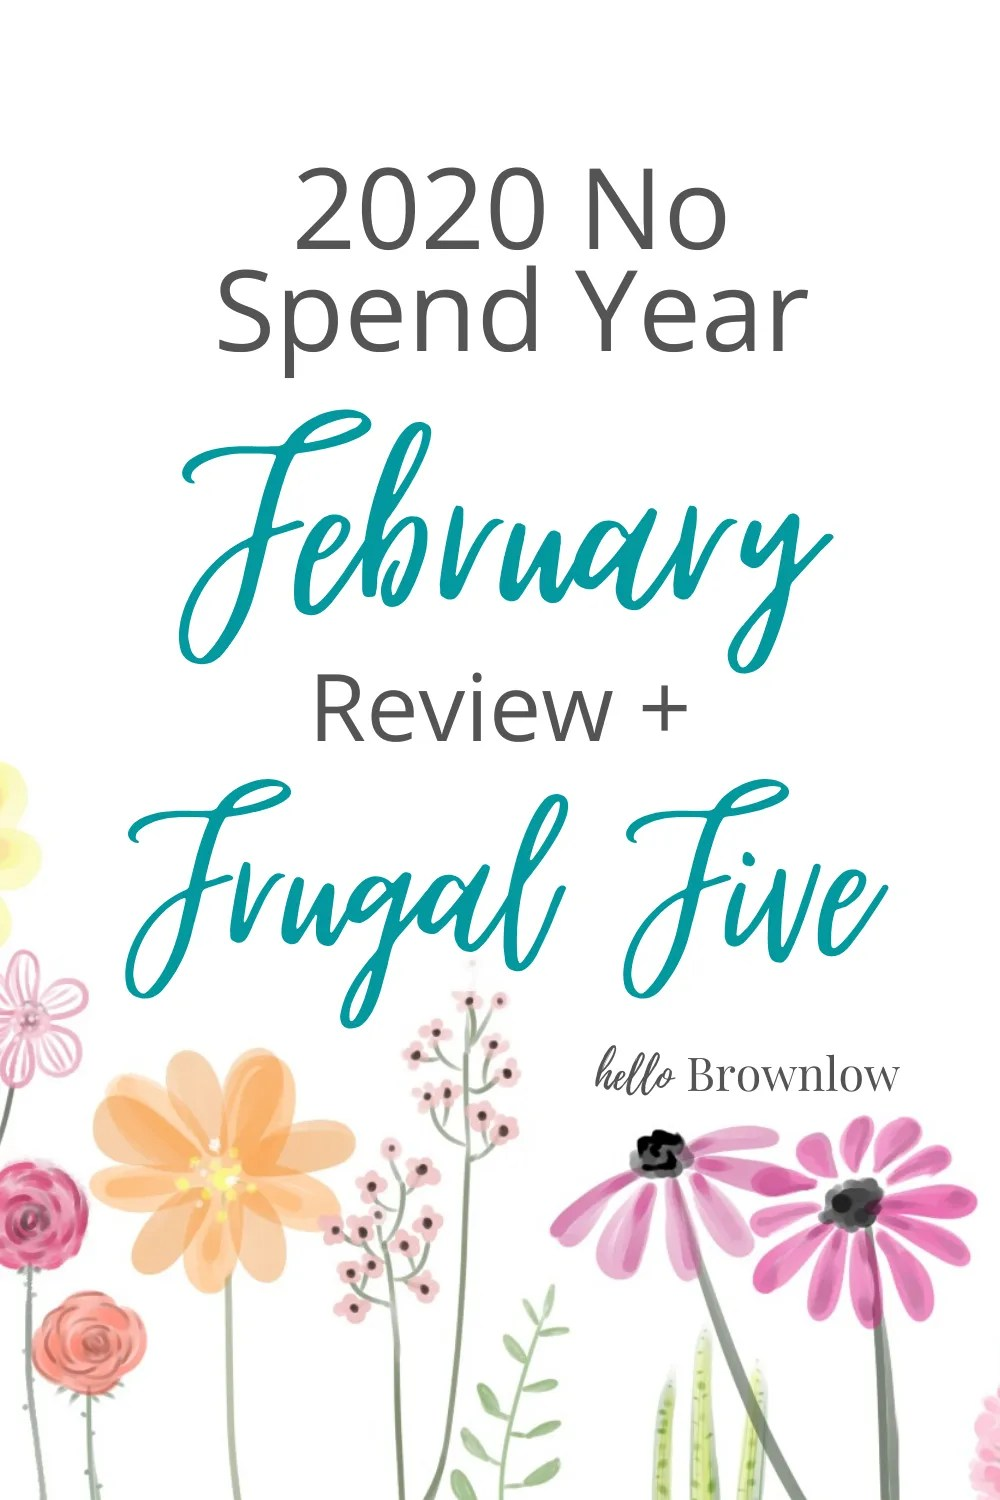 2020 No Spend Year - FEB Update and Frugal Five